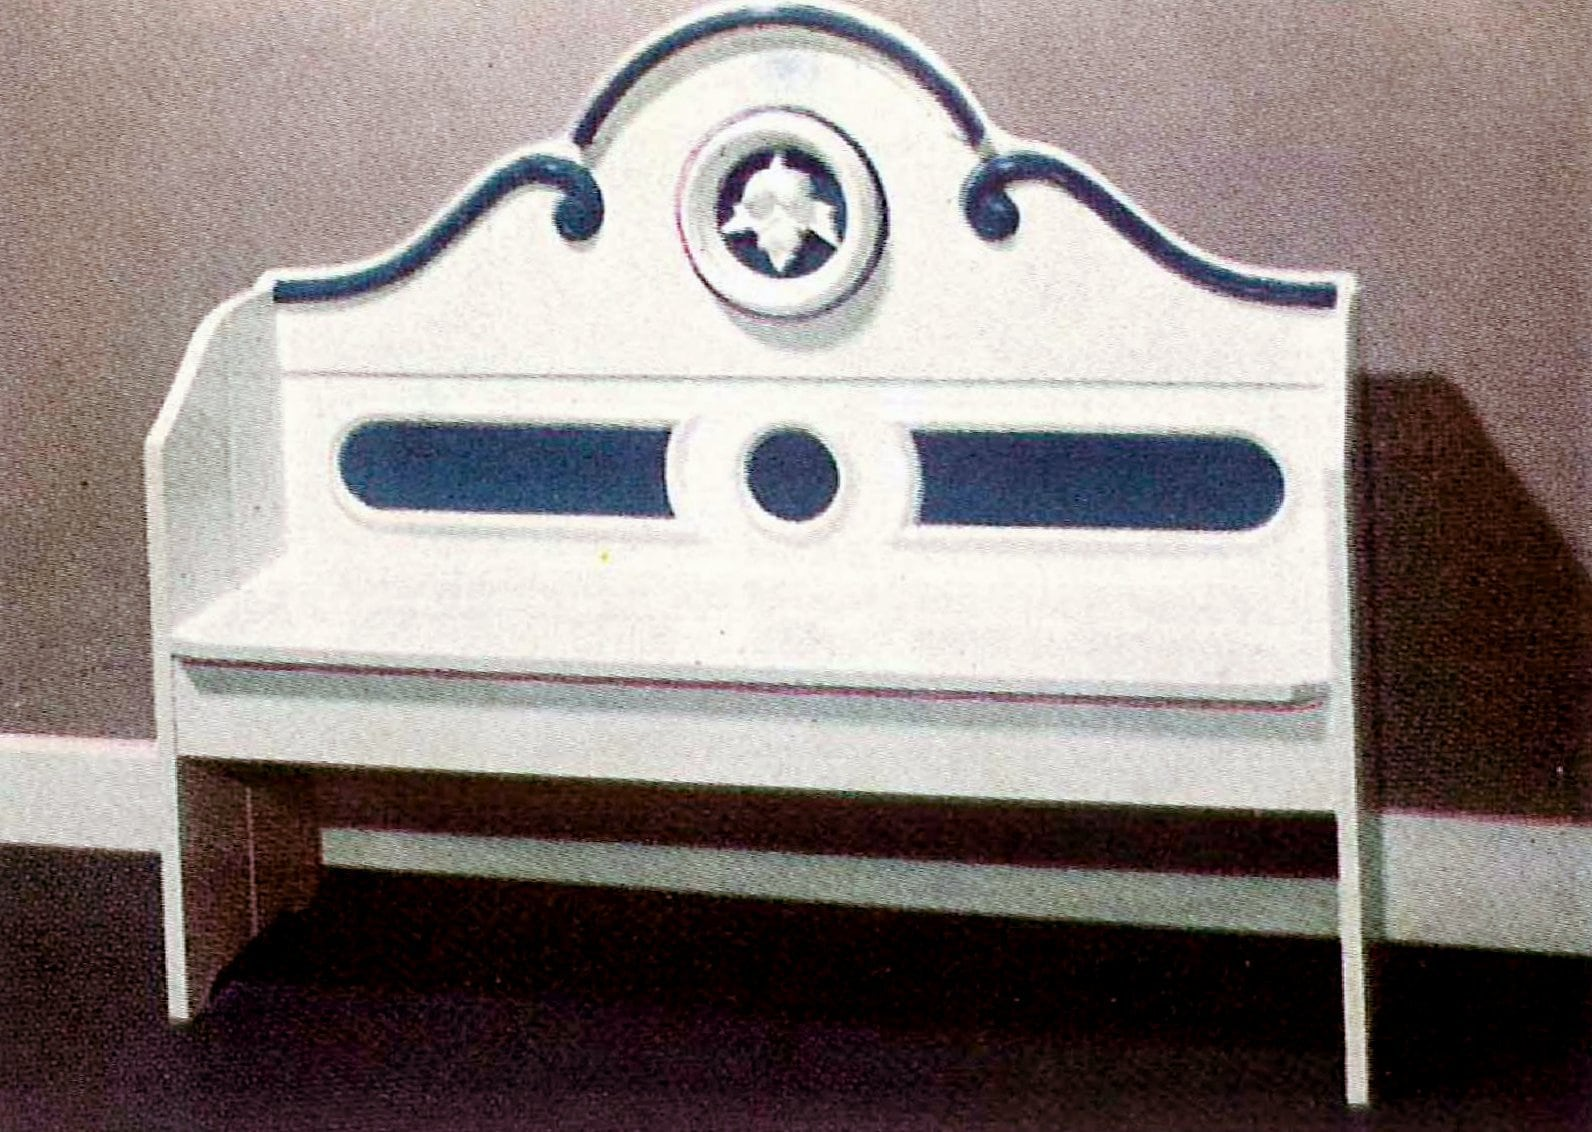 Converting parts of old beds into cute benches (2)